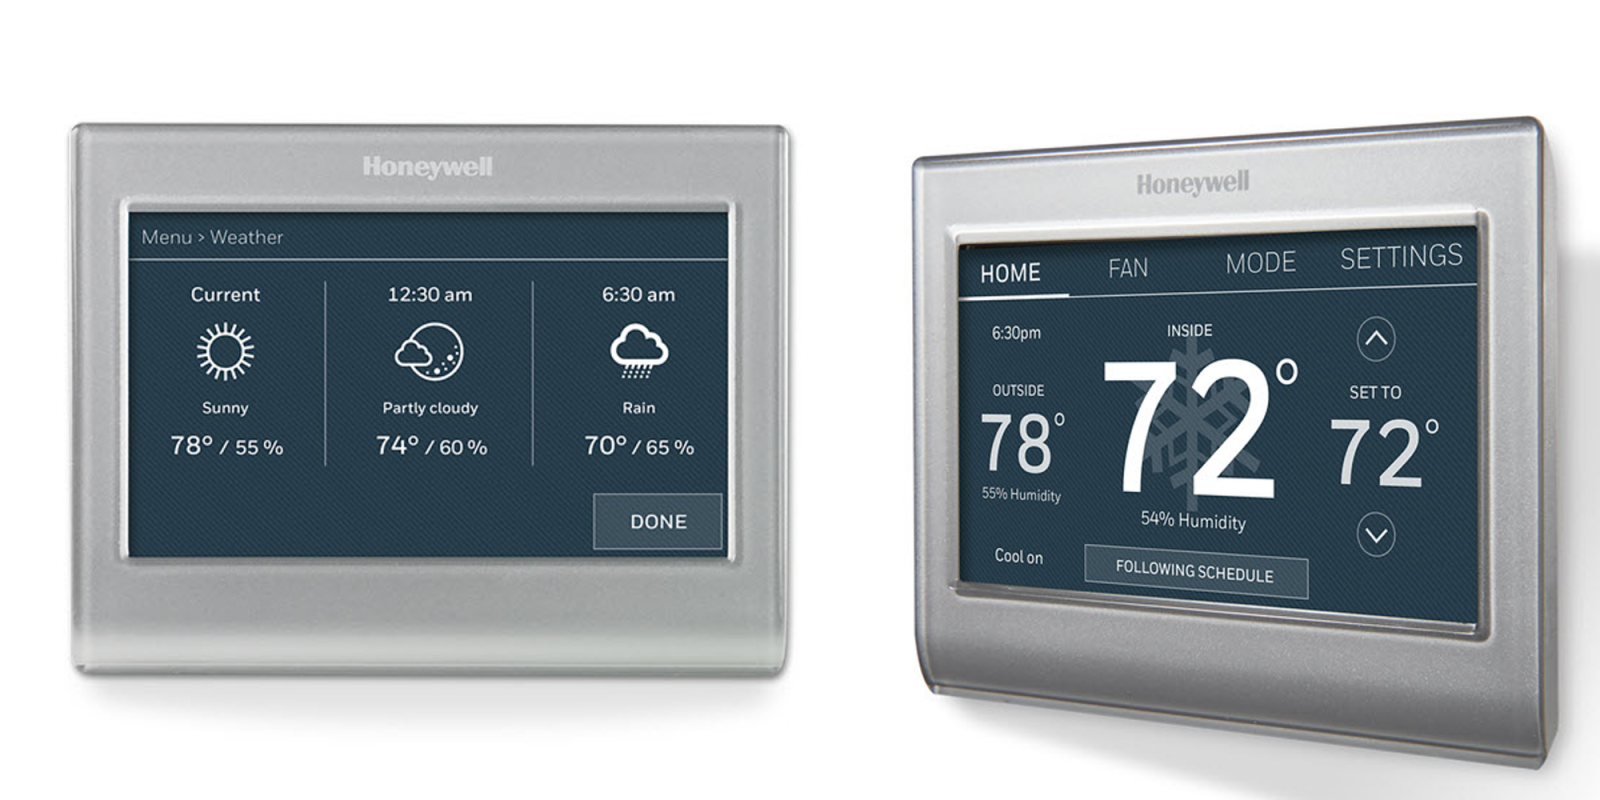 Honeywell's Wi-Fi Color Thermostat hits new Amazon all-time low at $127 (20% off)